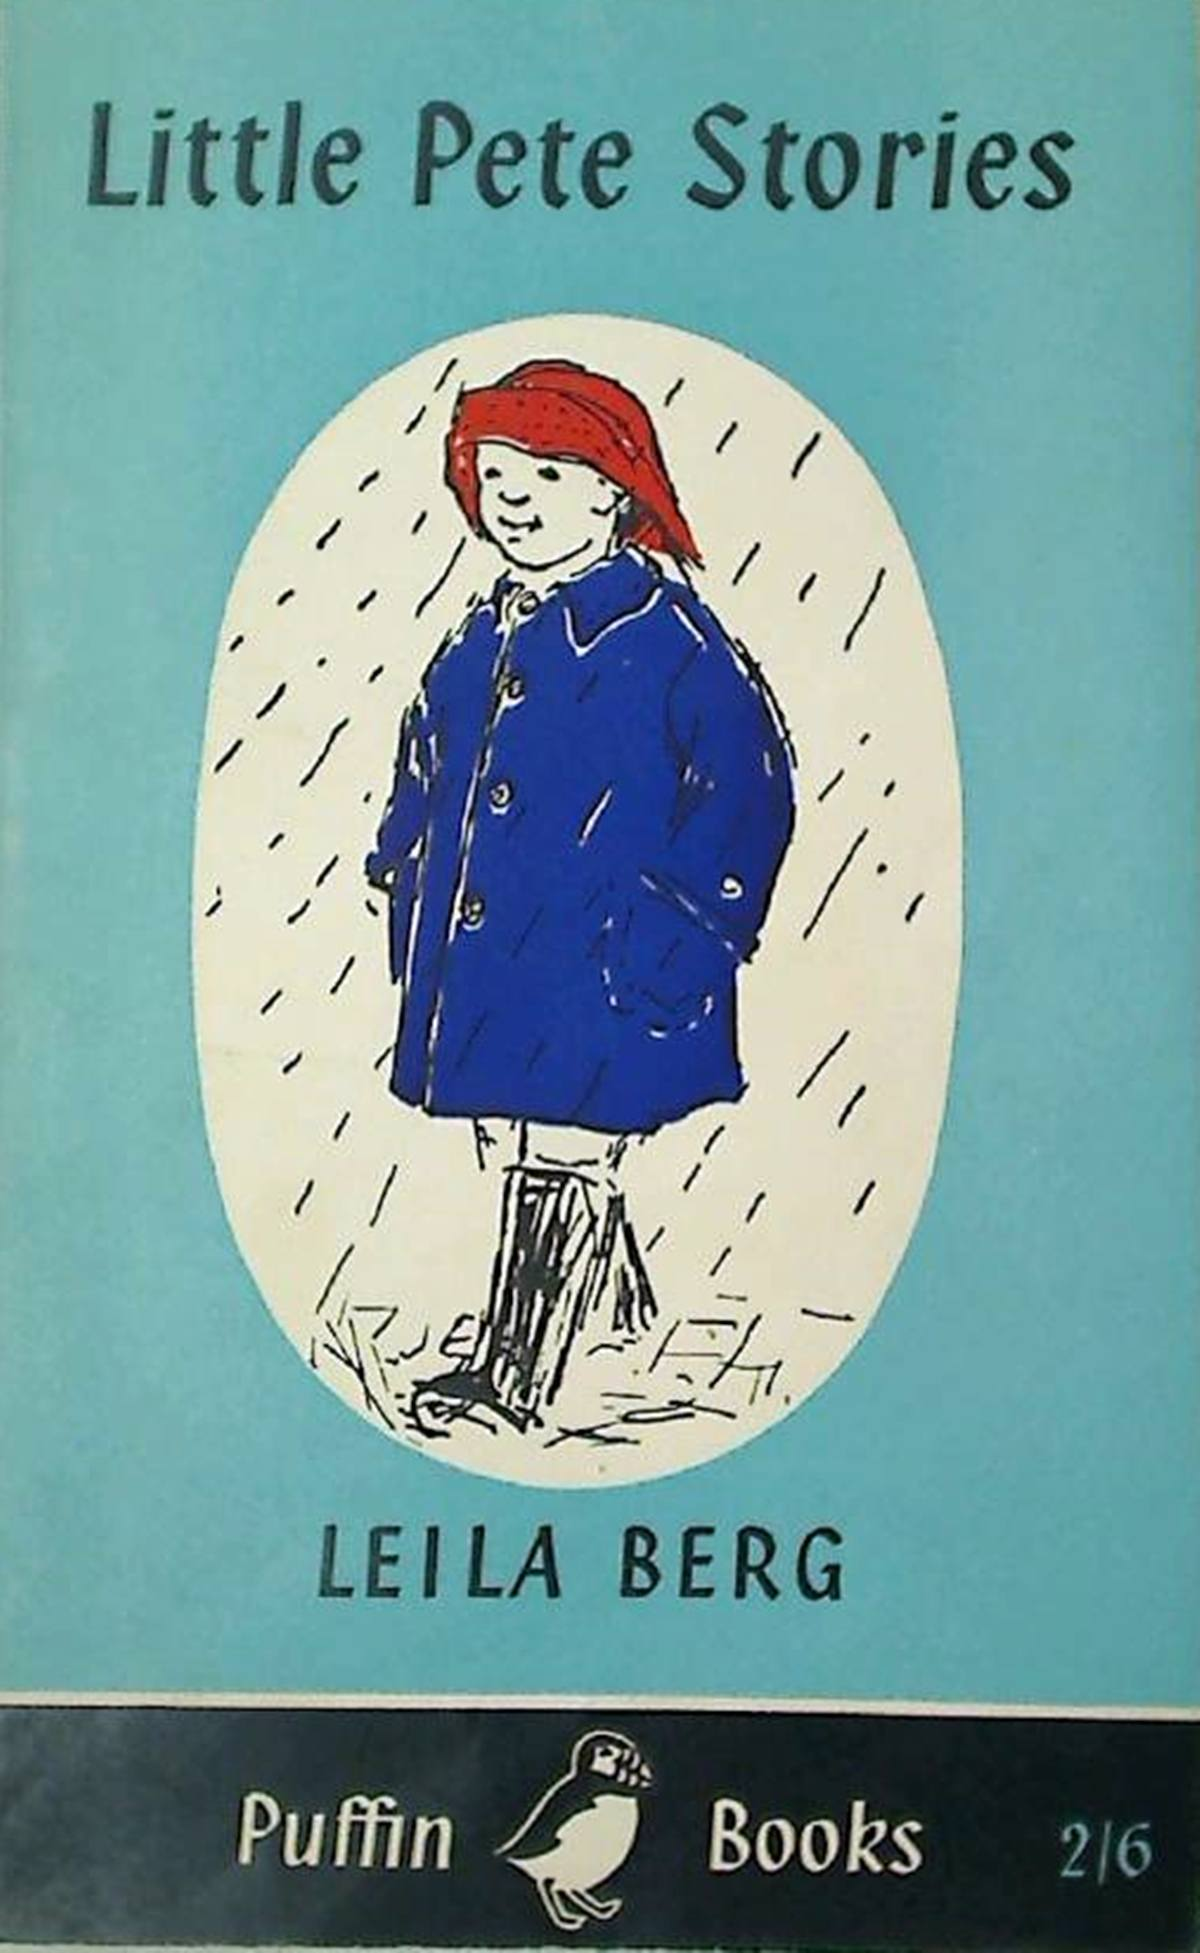 4 18 12 More Childhood Books You've Probably Forgotten About